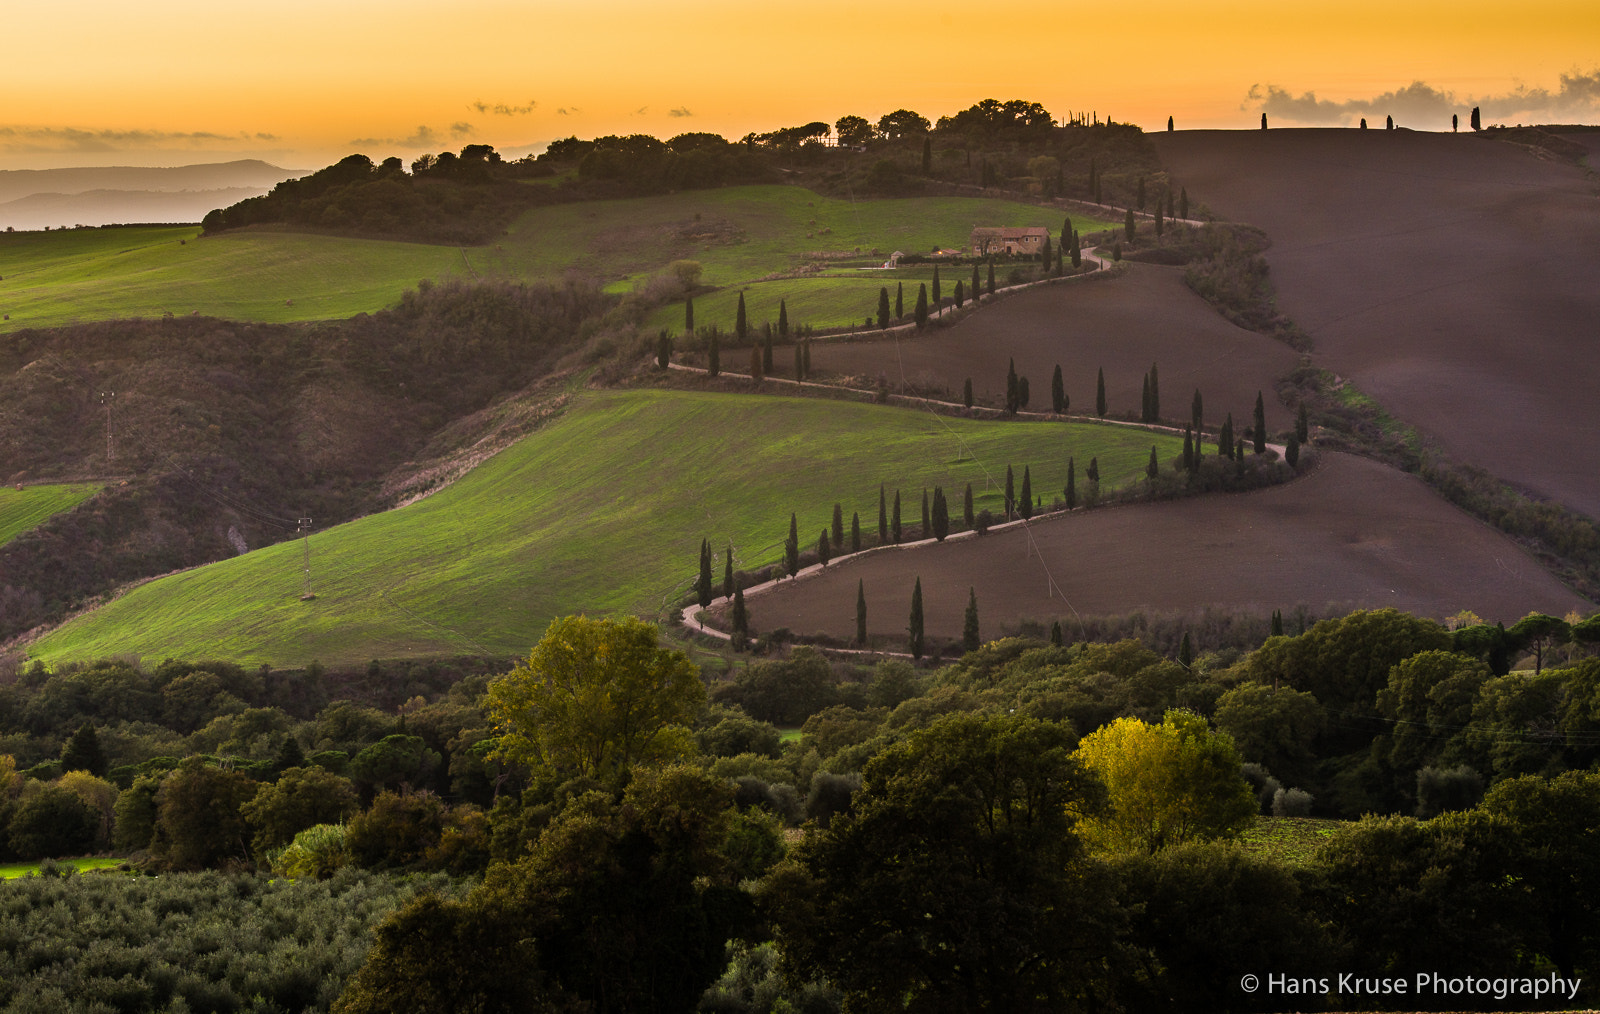 Photograph Winding road in Tuscany by Hans Kruse on 500px